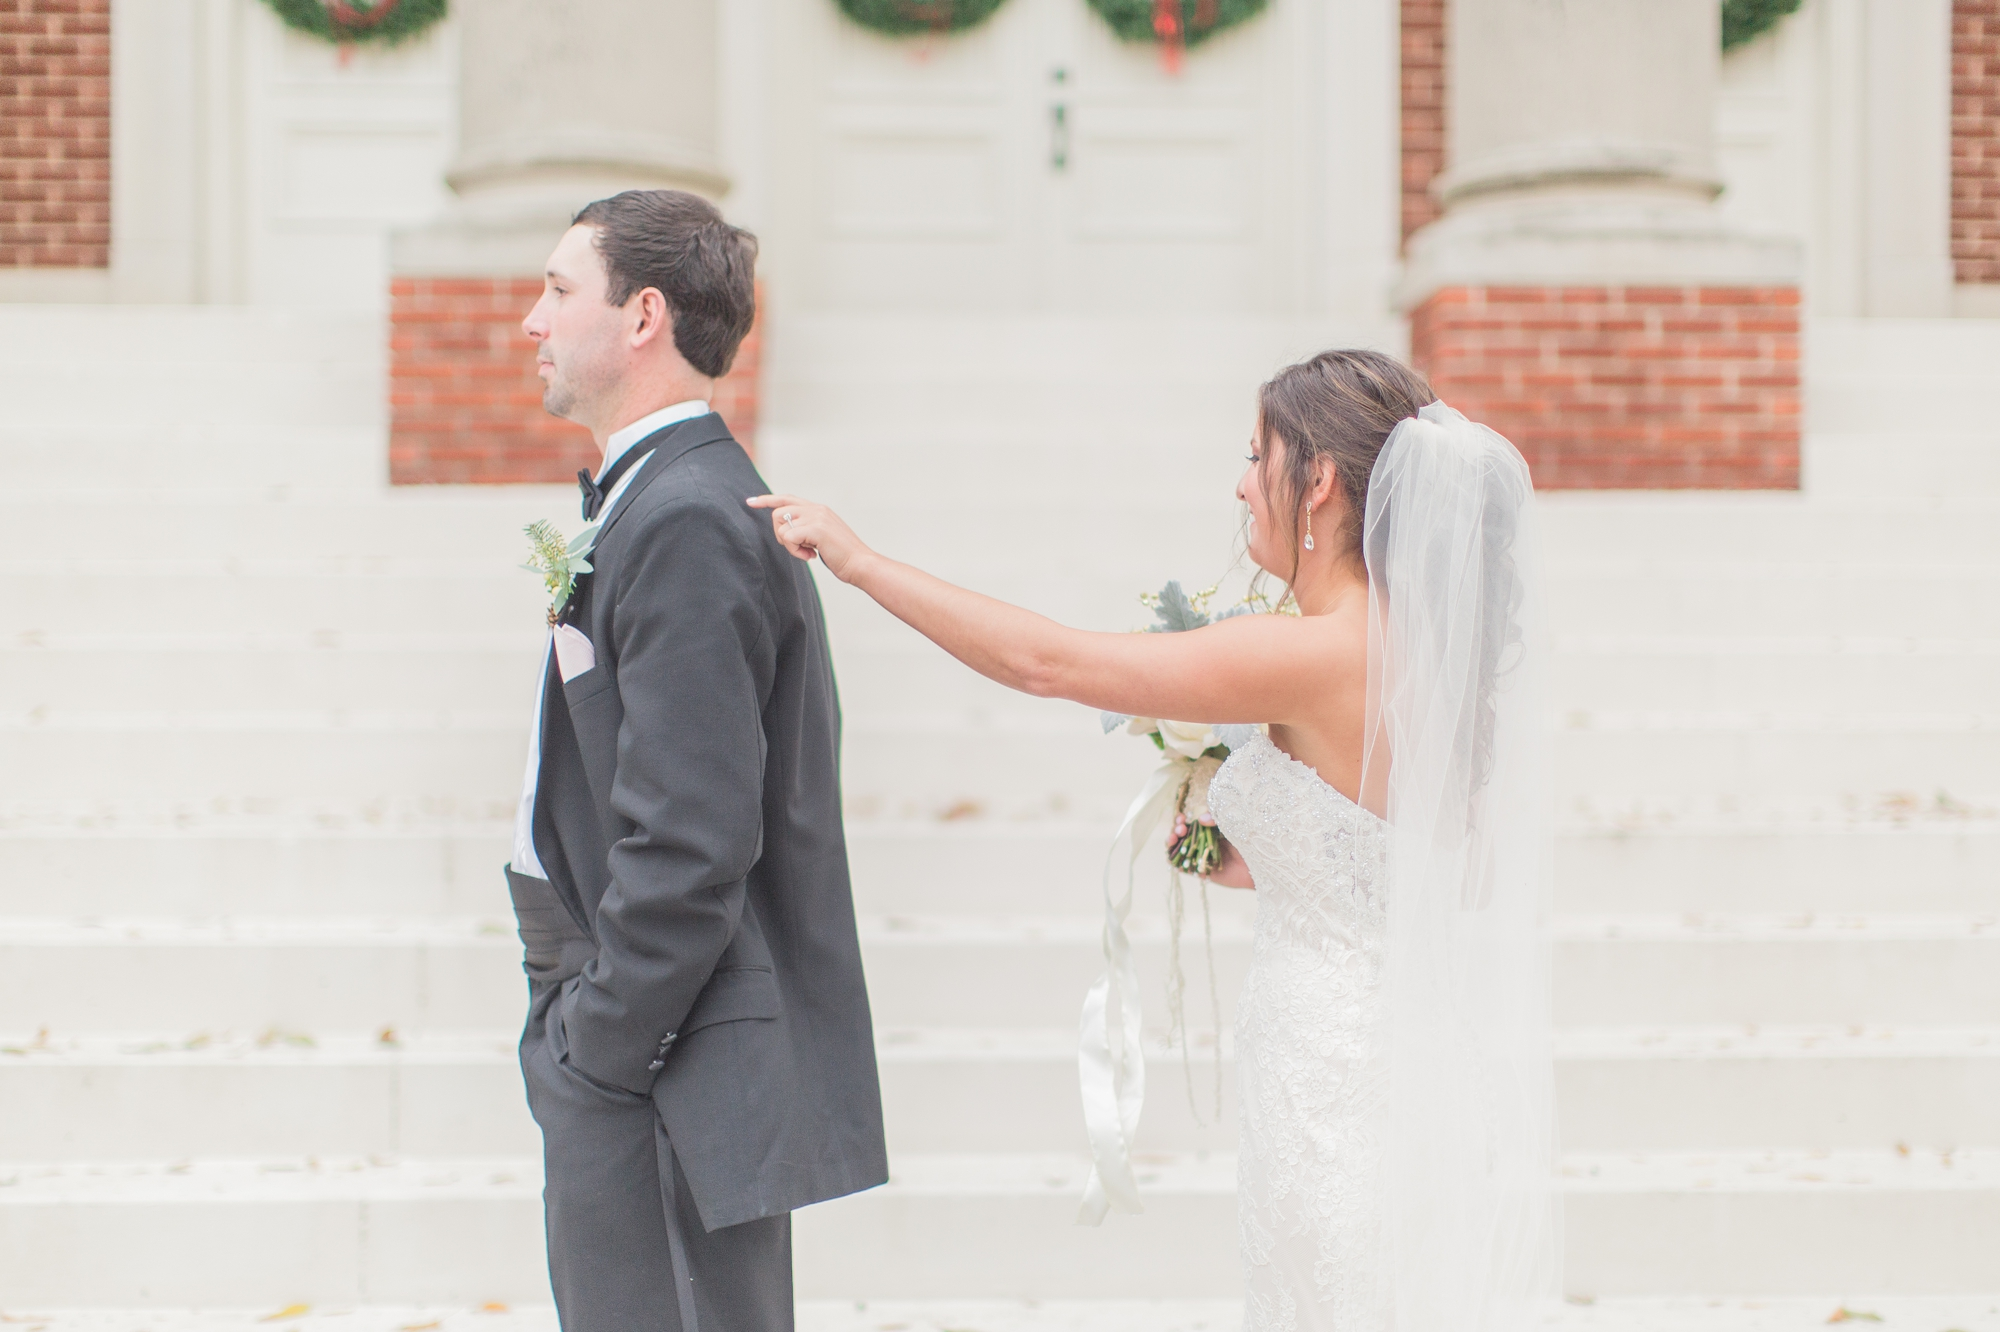 brozovich wedding 24.jpg